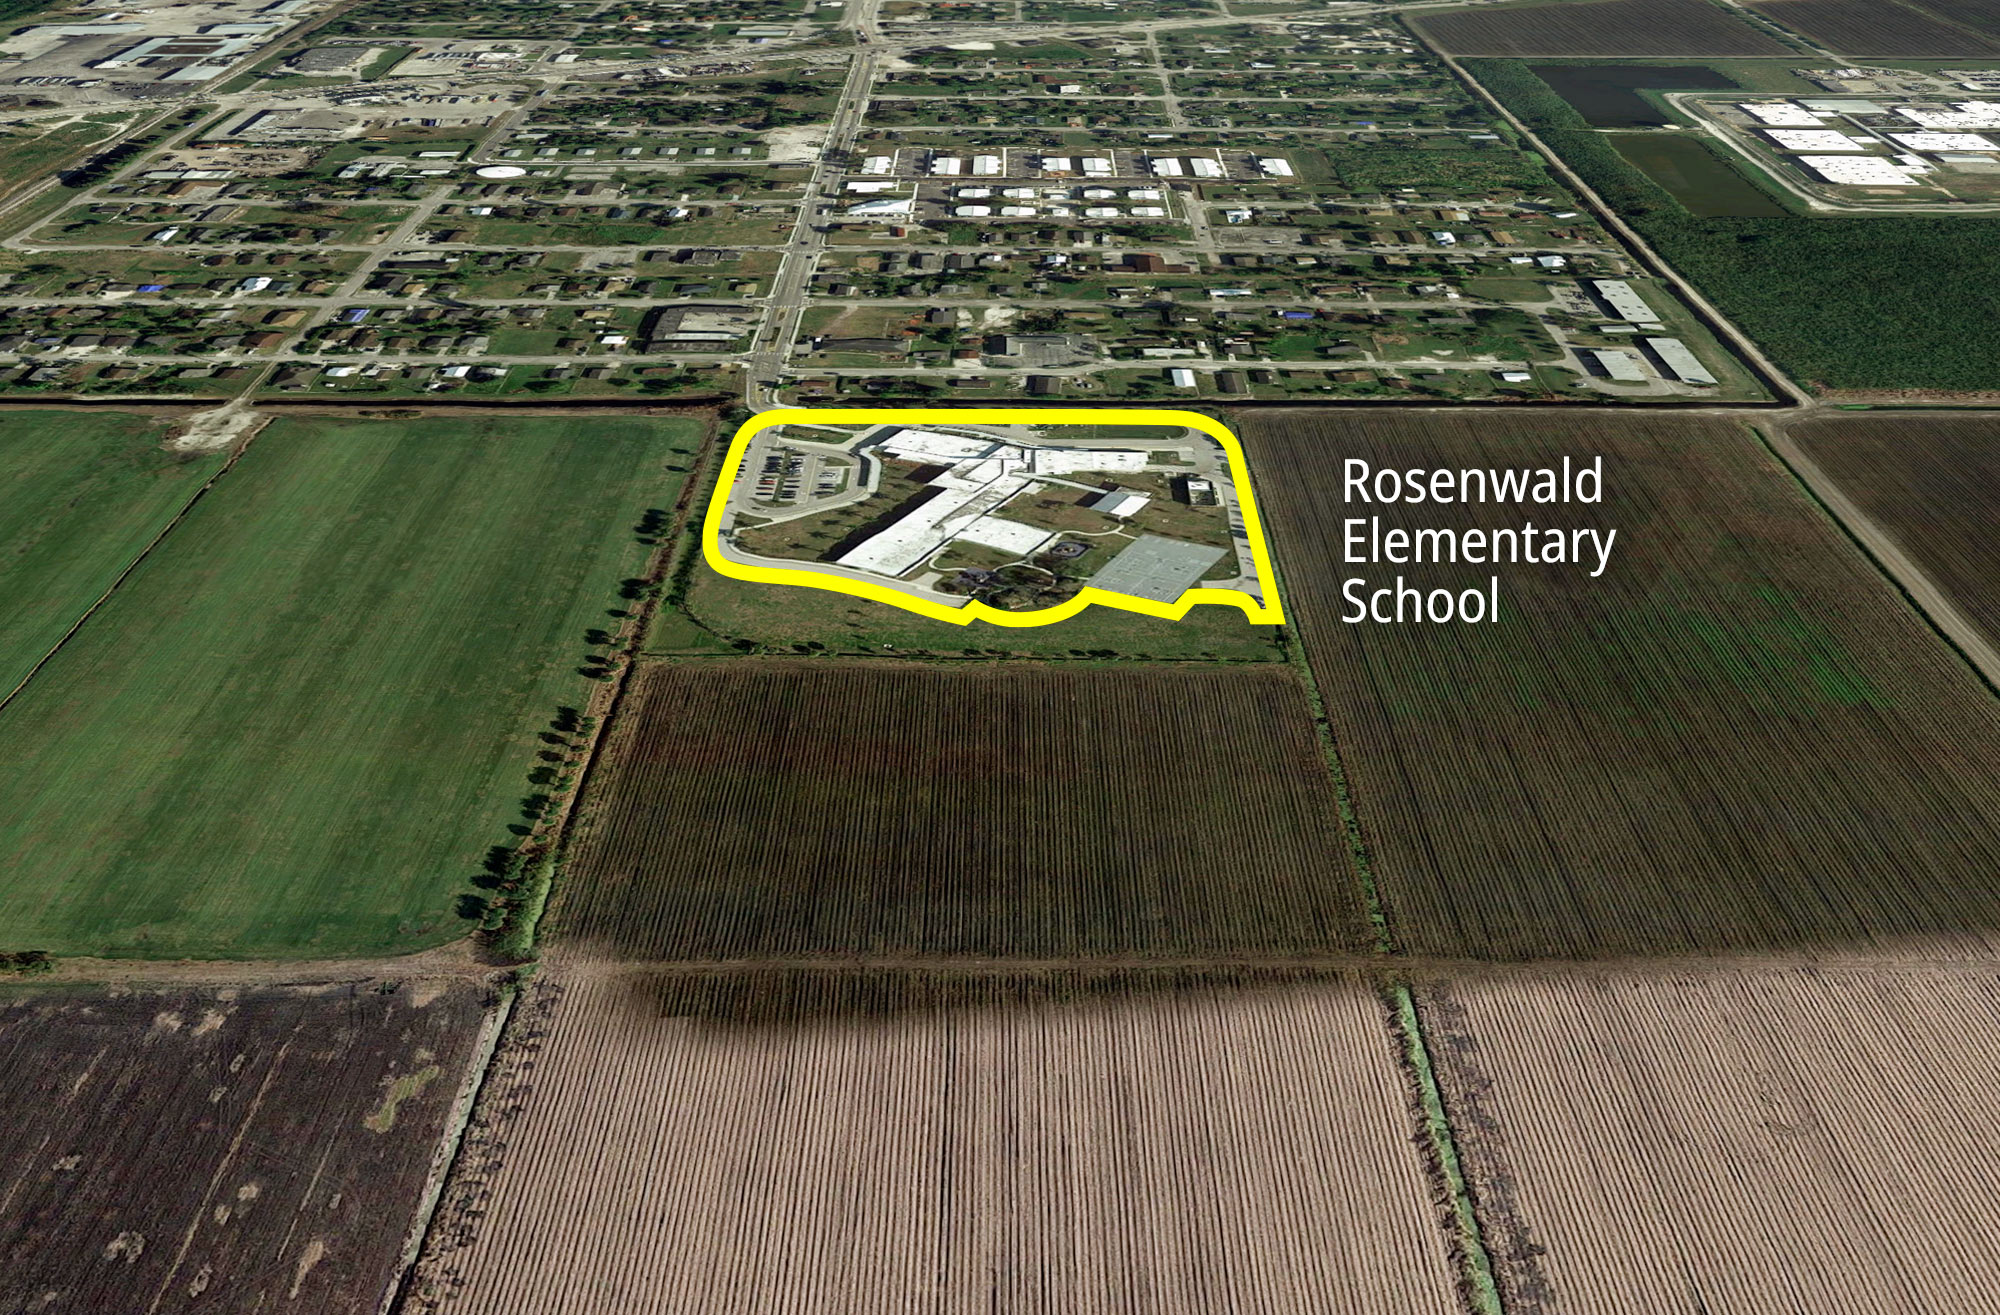 Rosenwald Elementary School in South Bay is adjacent to nearly eight acres of sugarcane stalks. Students are often unable to play outside due to smoke from sugarcane burns.